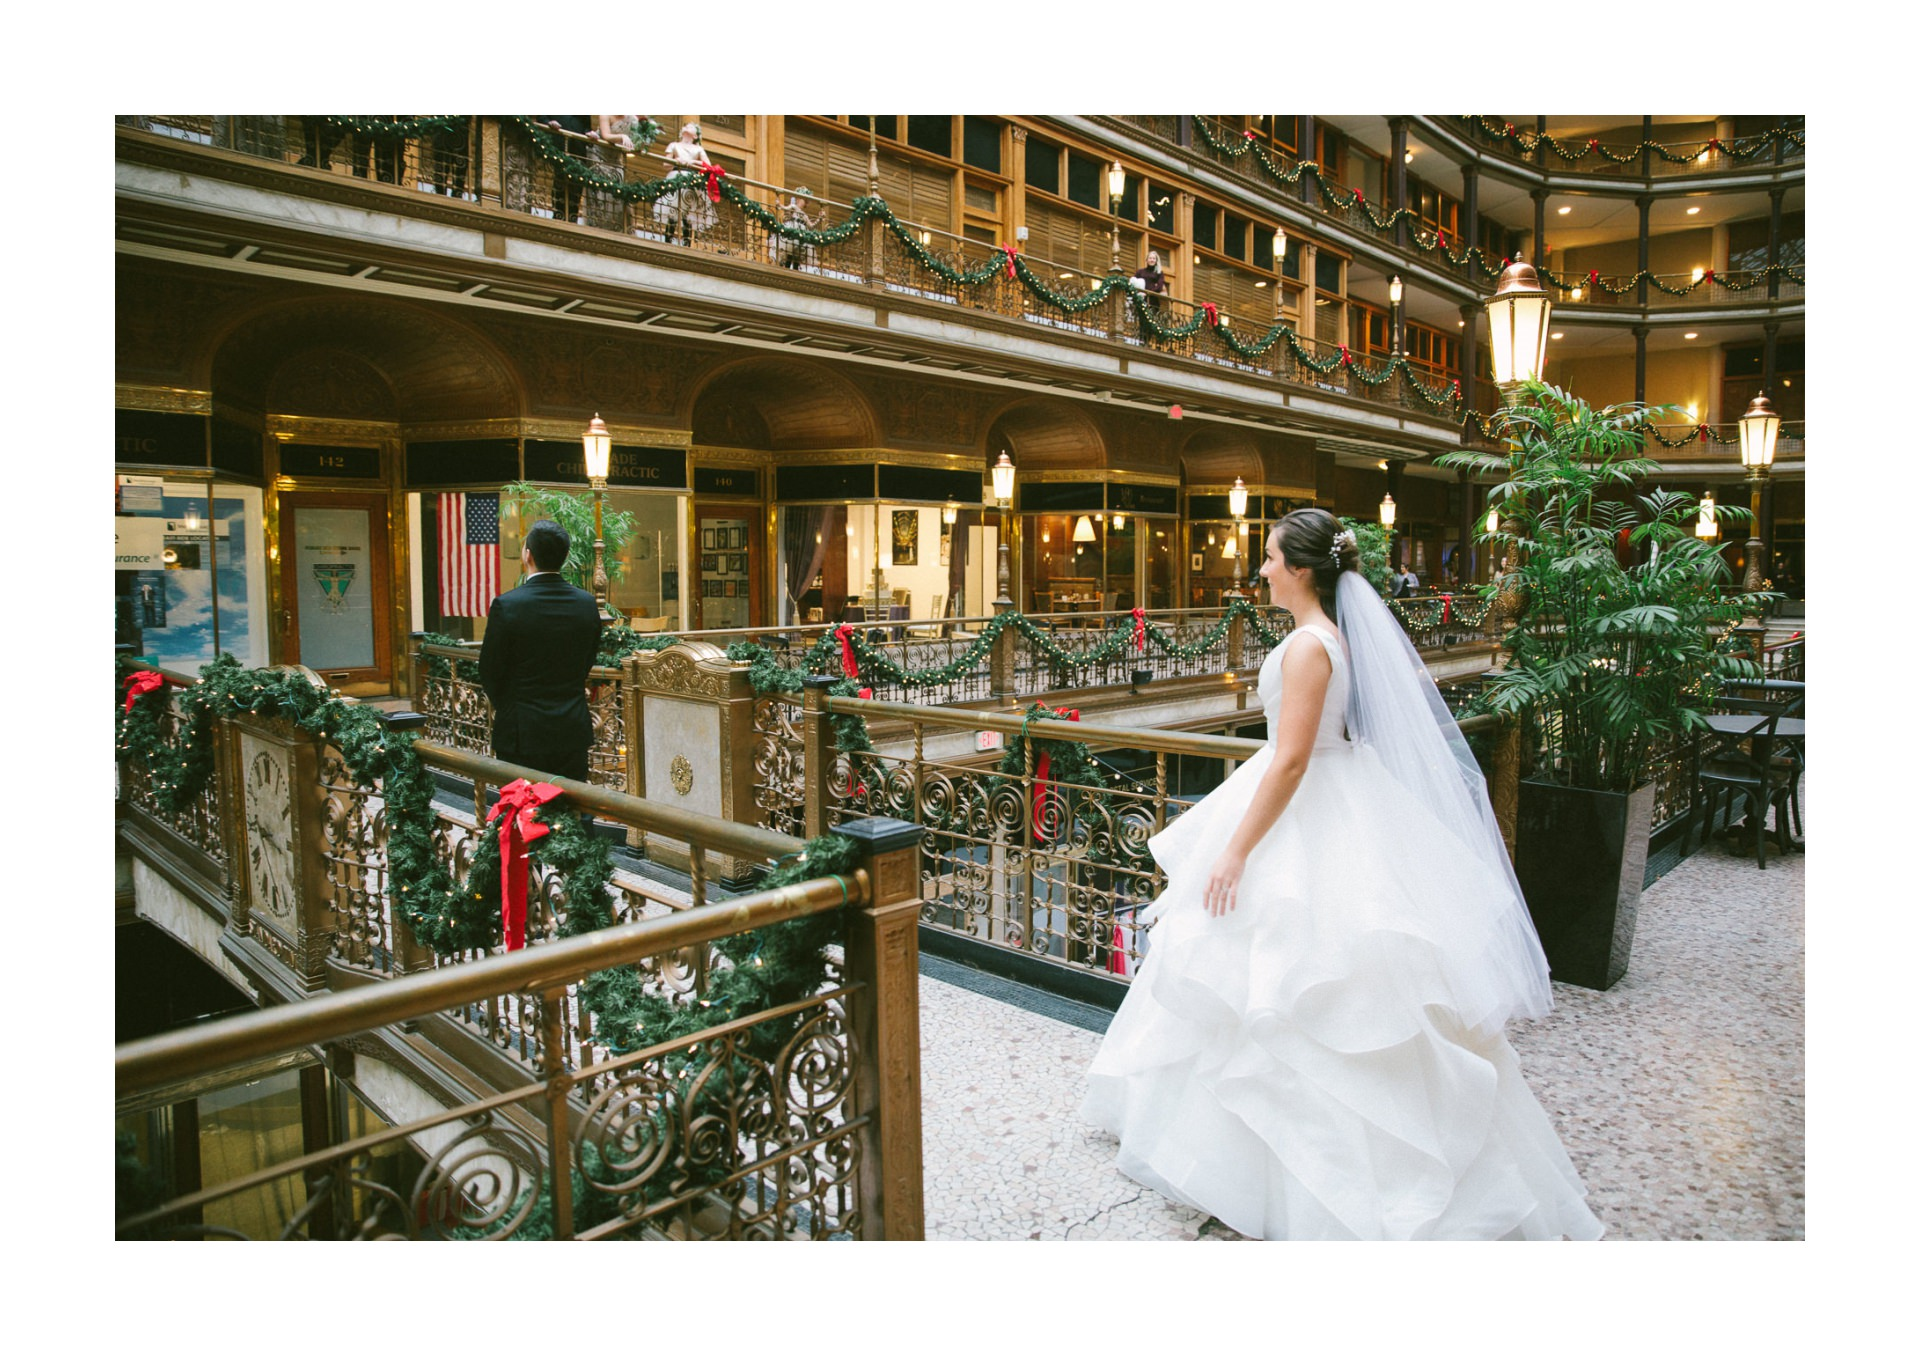 Hyatt Old Arcade Wedding Photographer in Cleveland 1 22.jpg